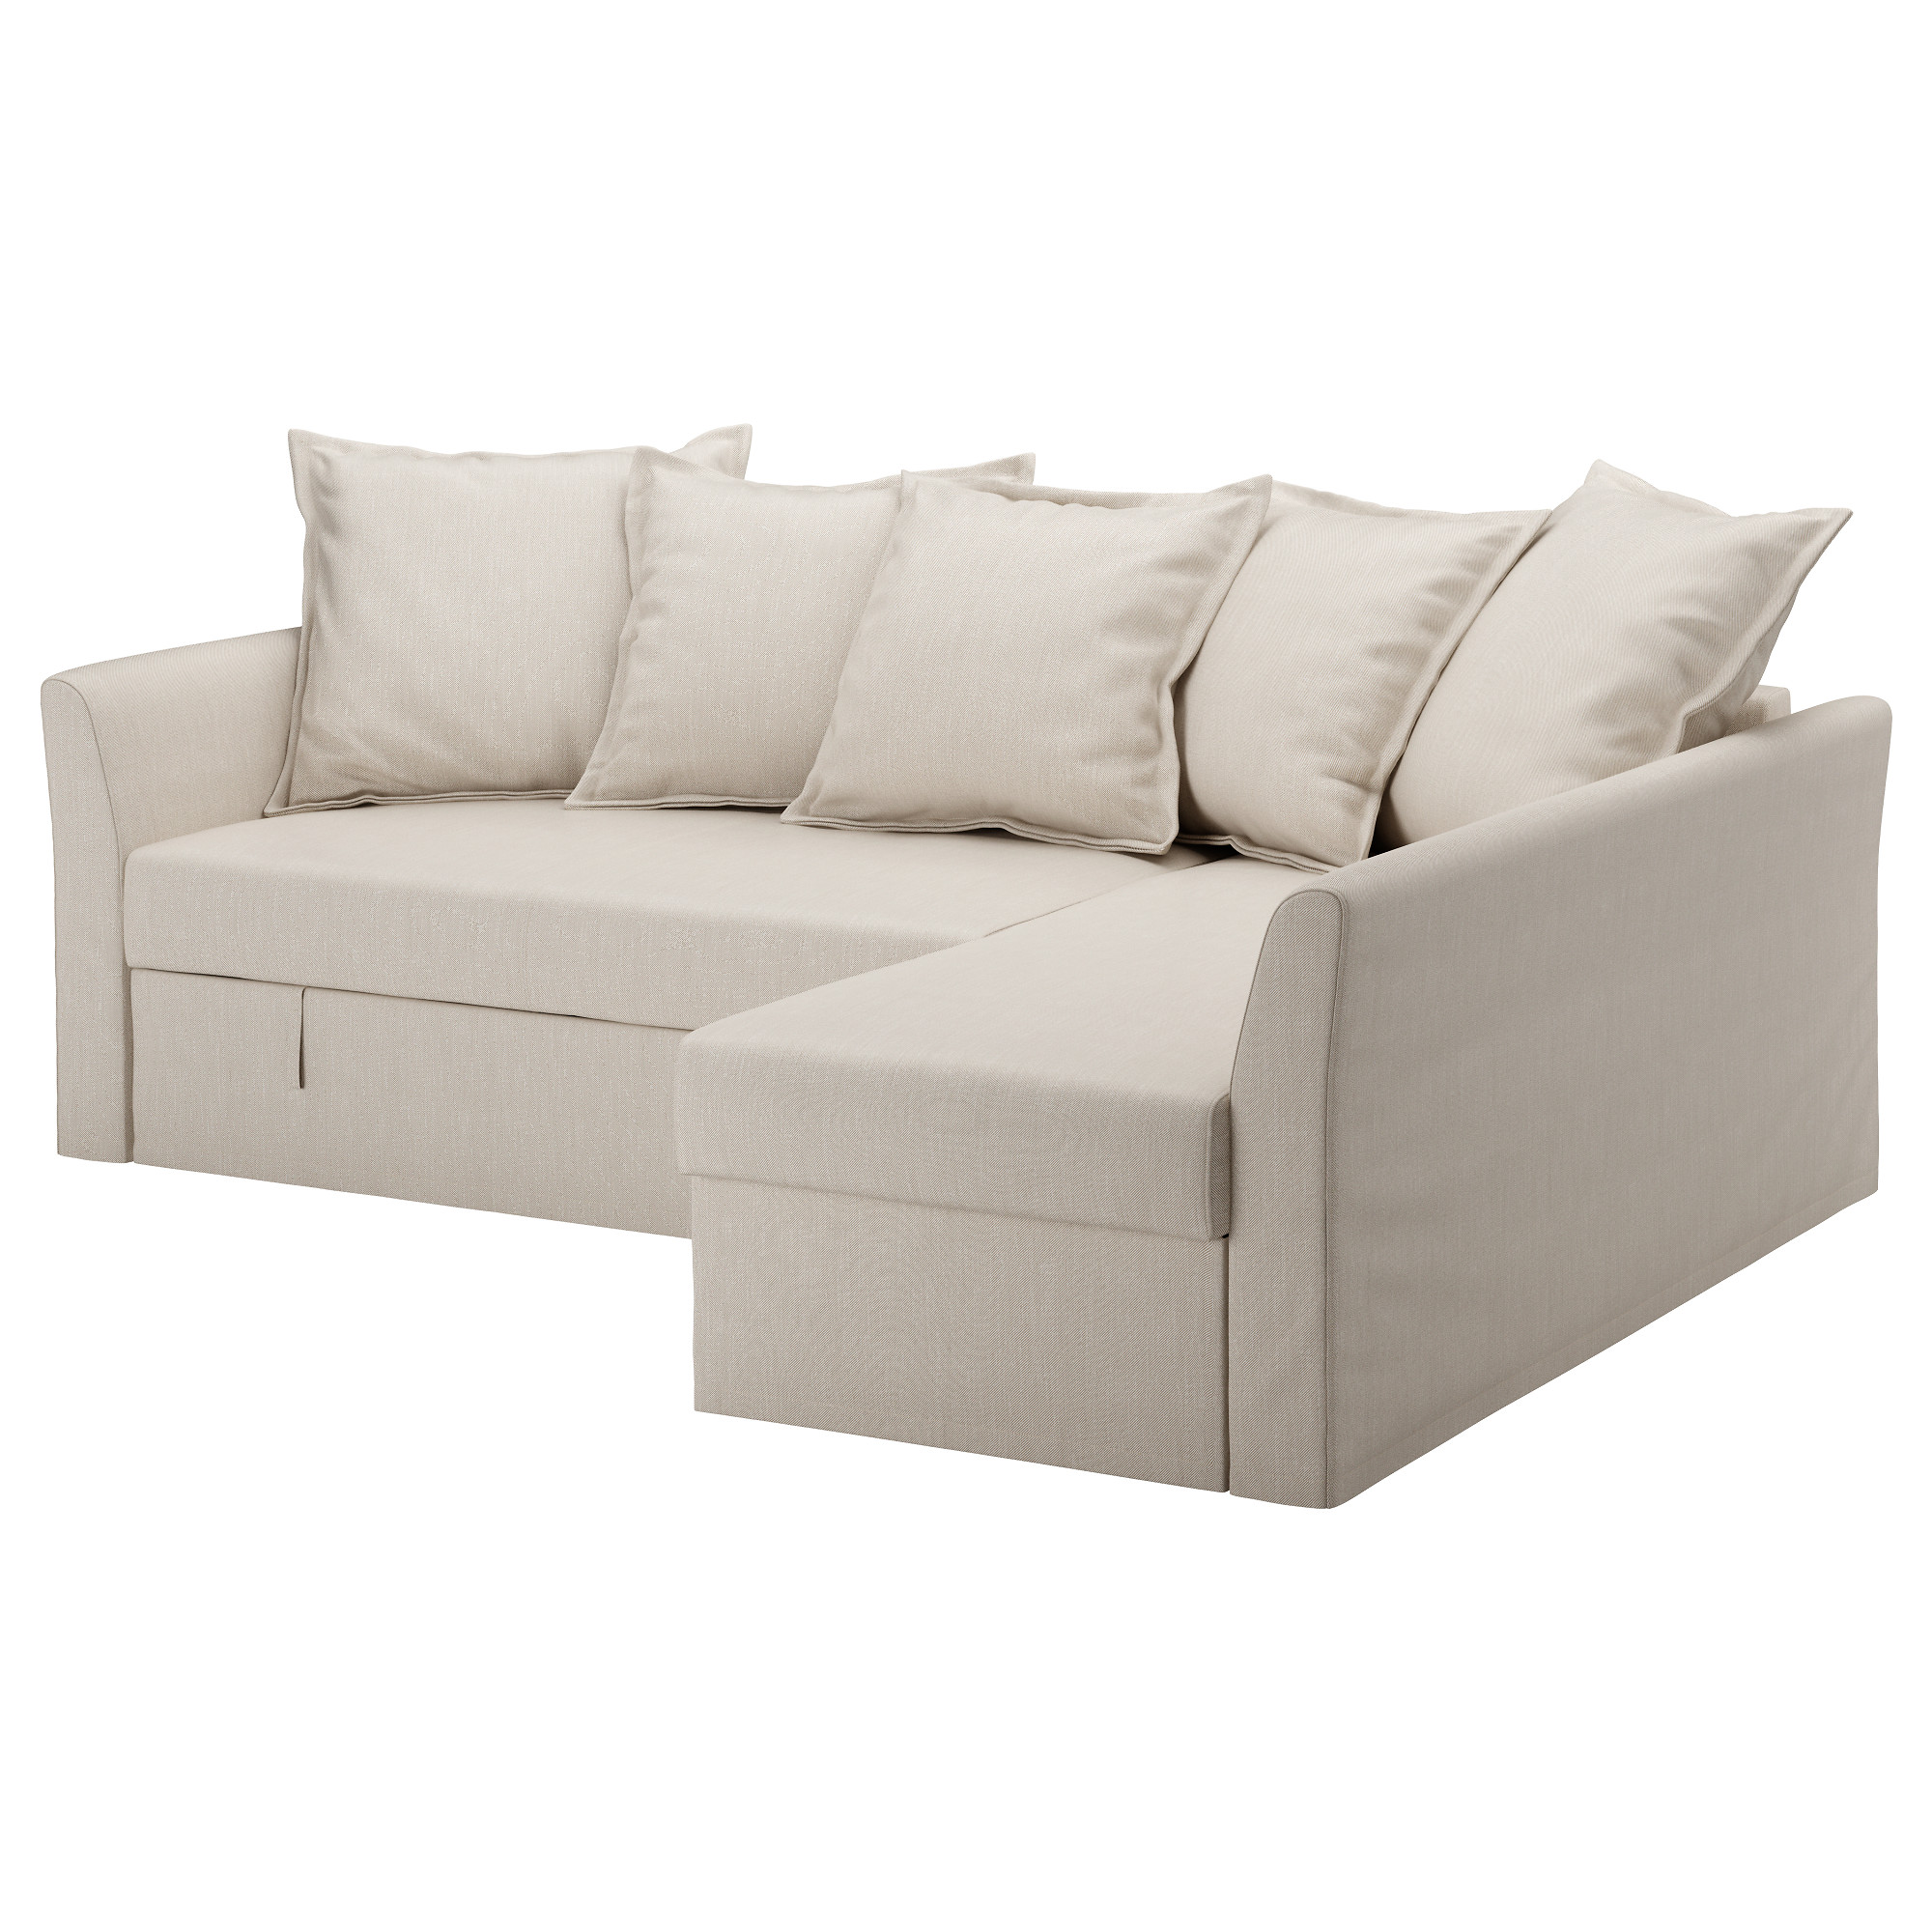 Canape convertible blanc free un canap convertible places for Canape convertible couchage quotidien ikea